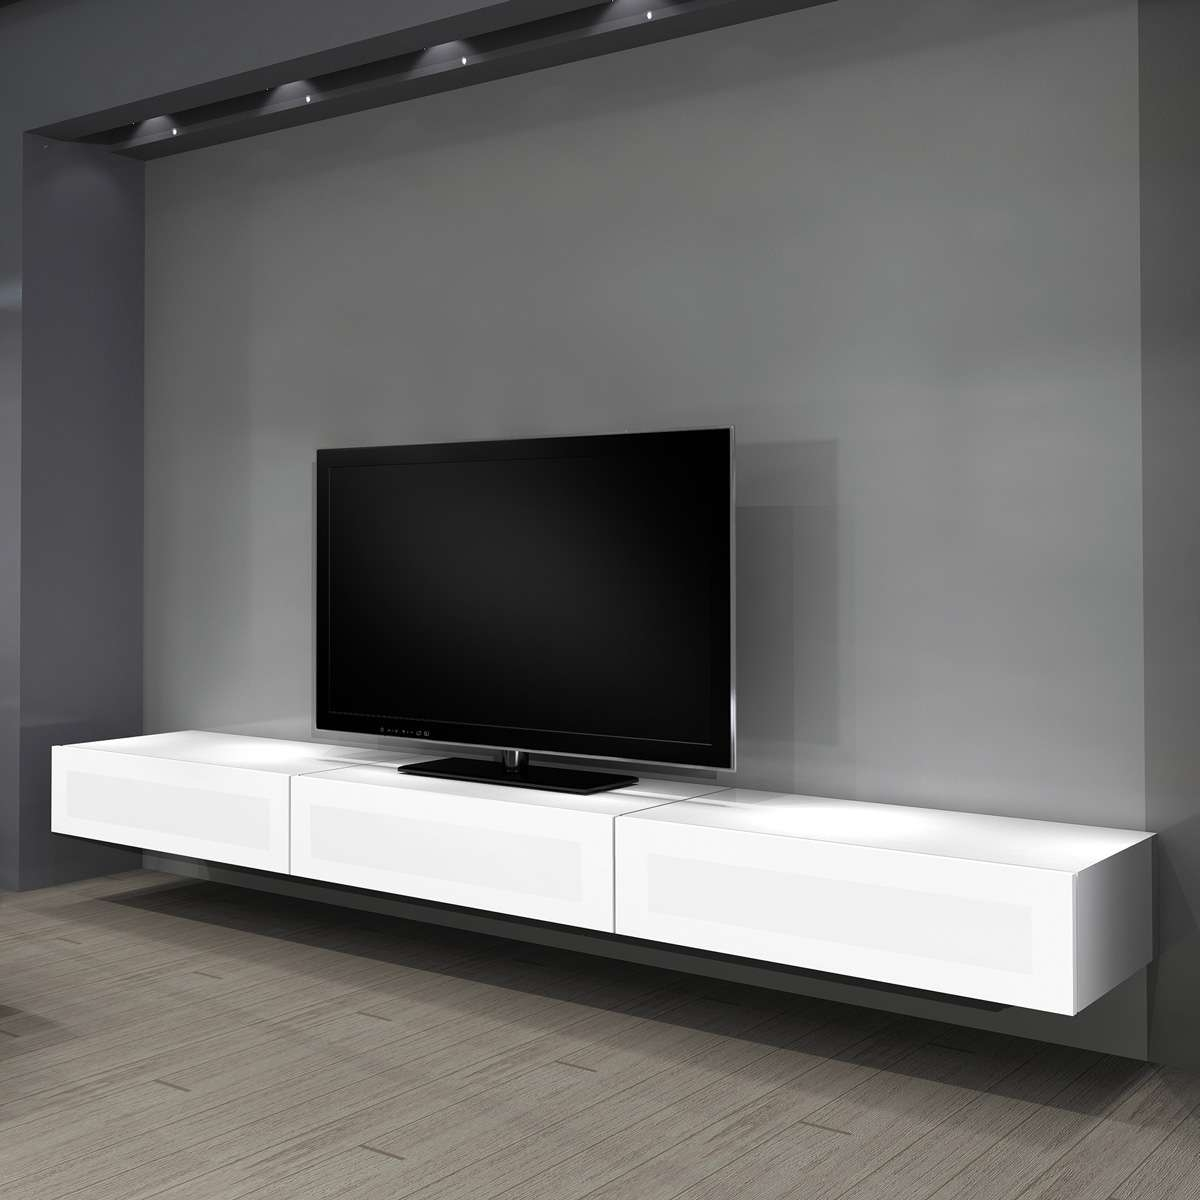 Nice Cream Nuance Of The Ikea Tv Cabinet Wall Mount Can Be Decor With Wall Mounted Tv Cabinets Ikea (View 4 of 20)